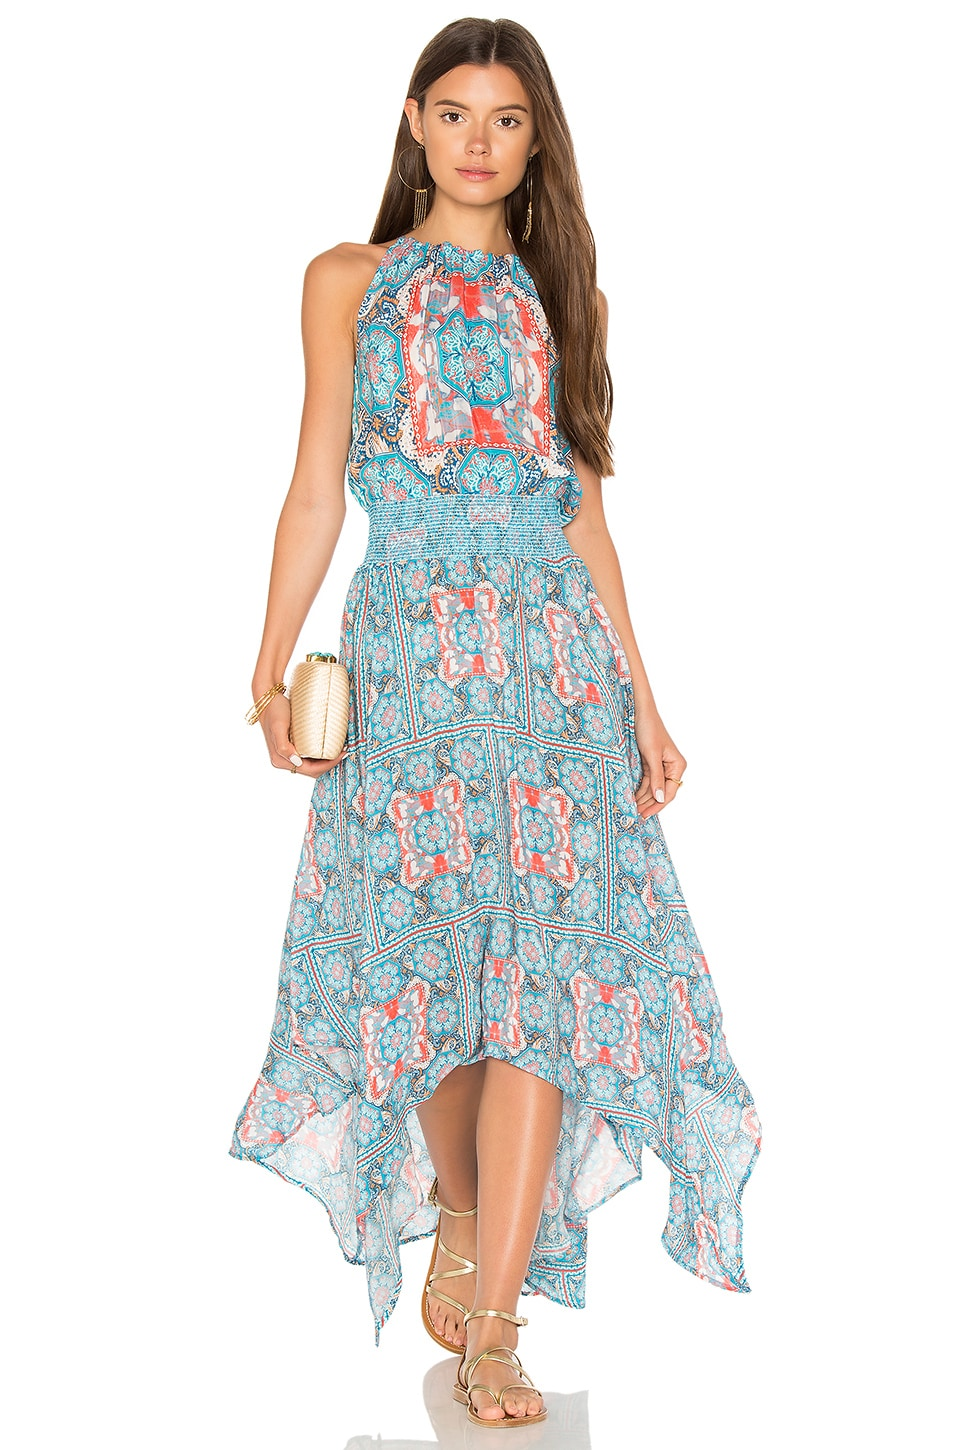 Tolani Tamara Maxi Dress in Sky